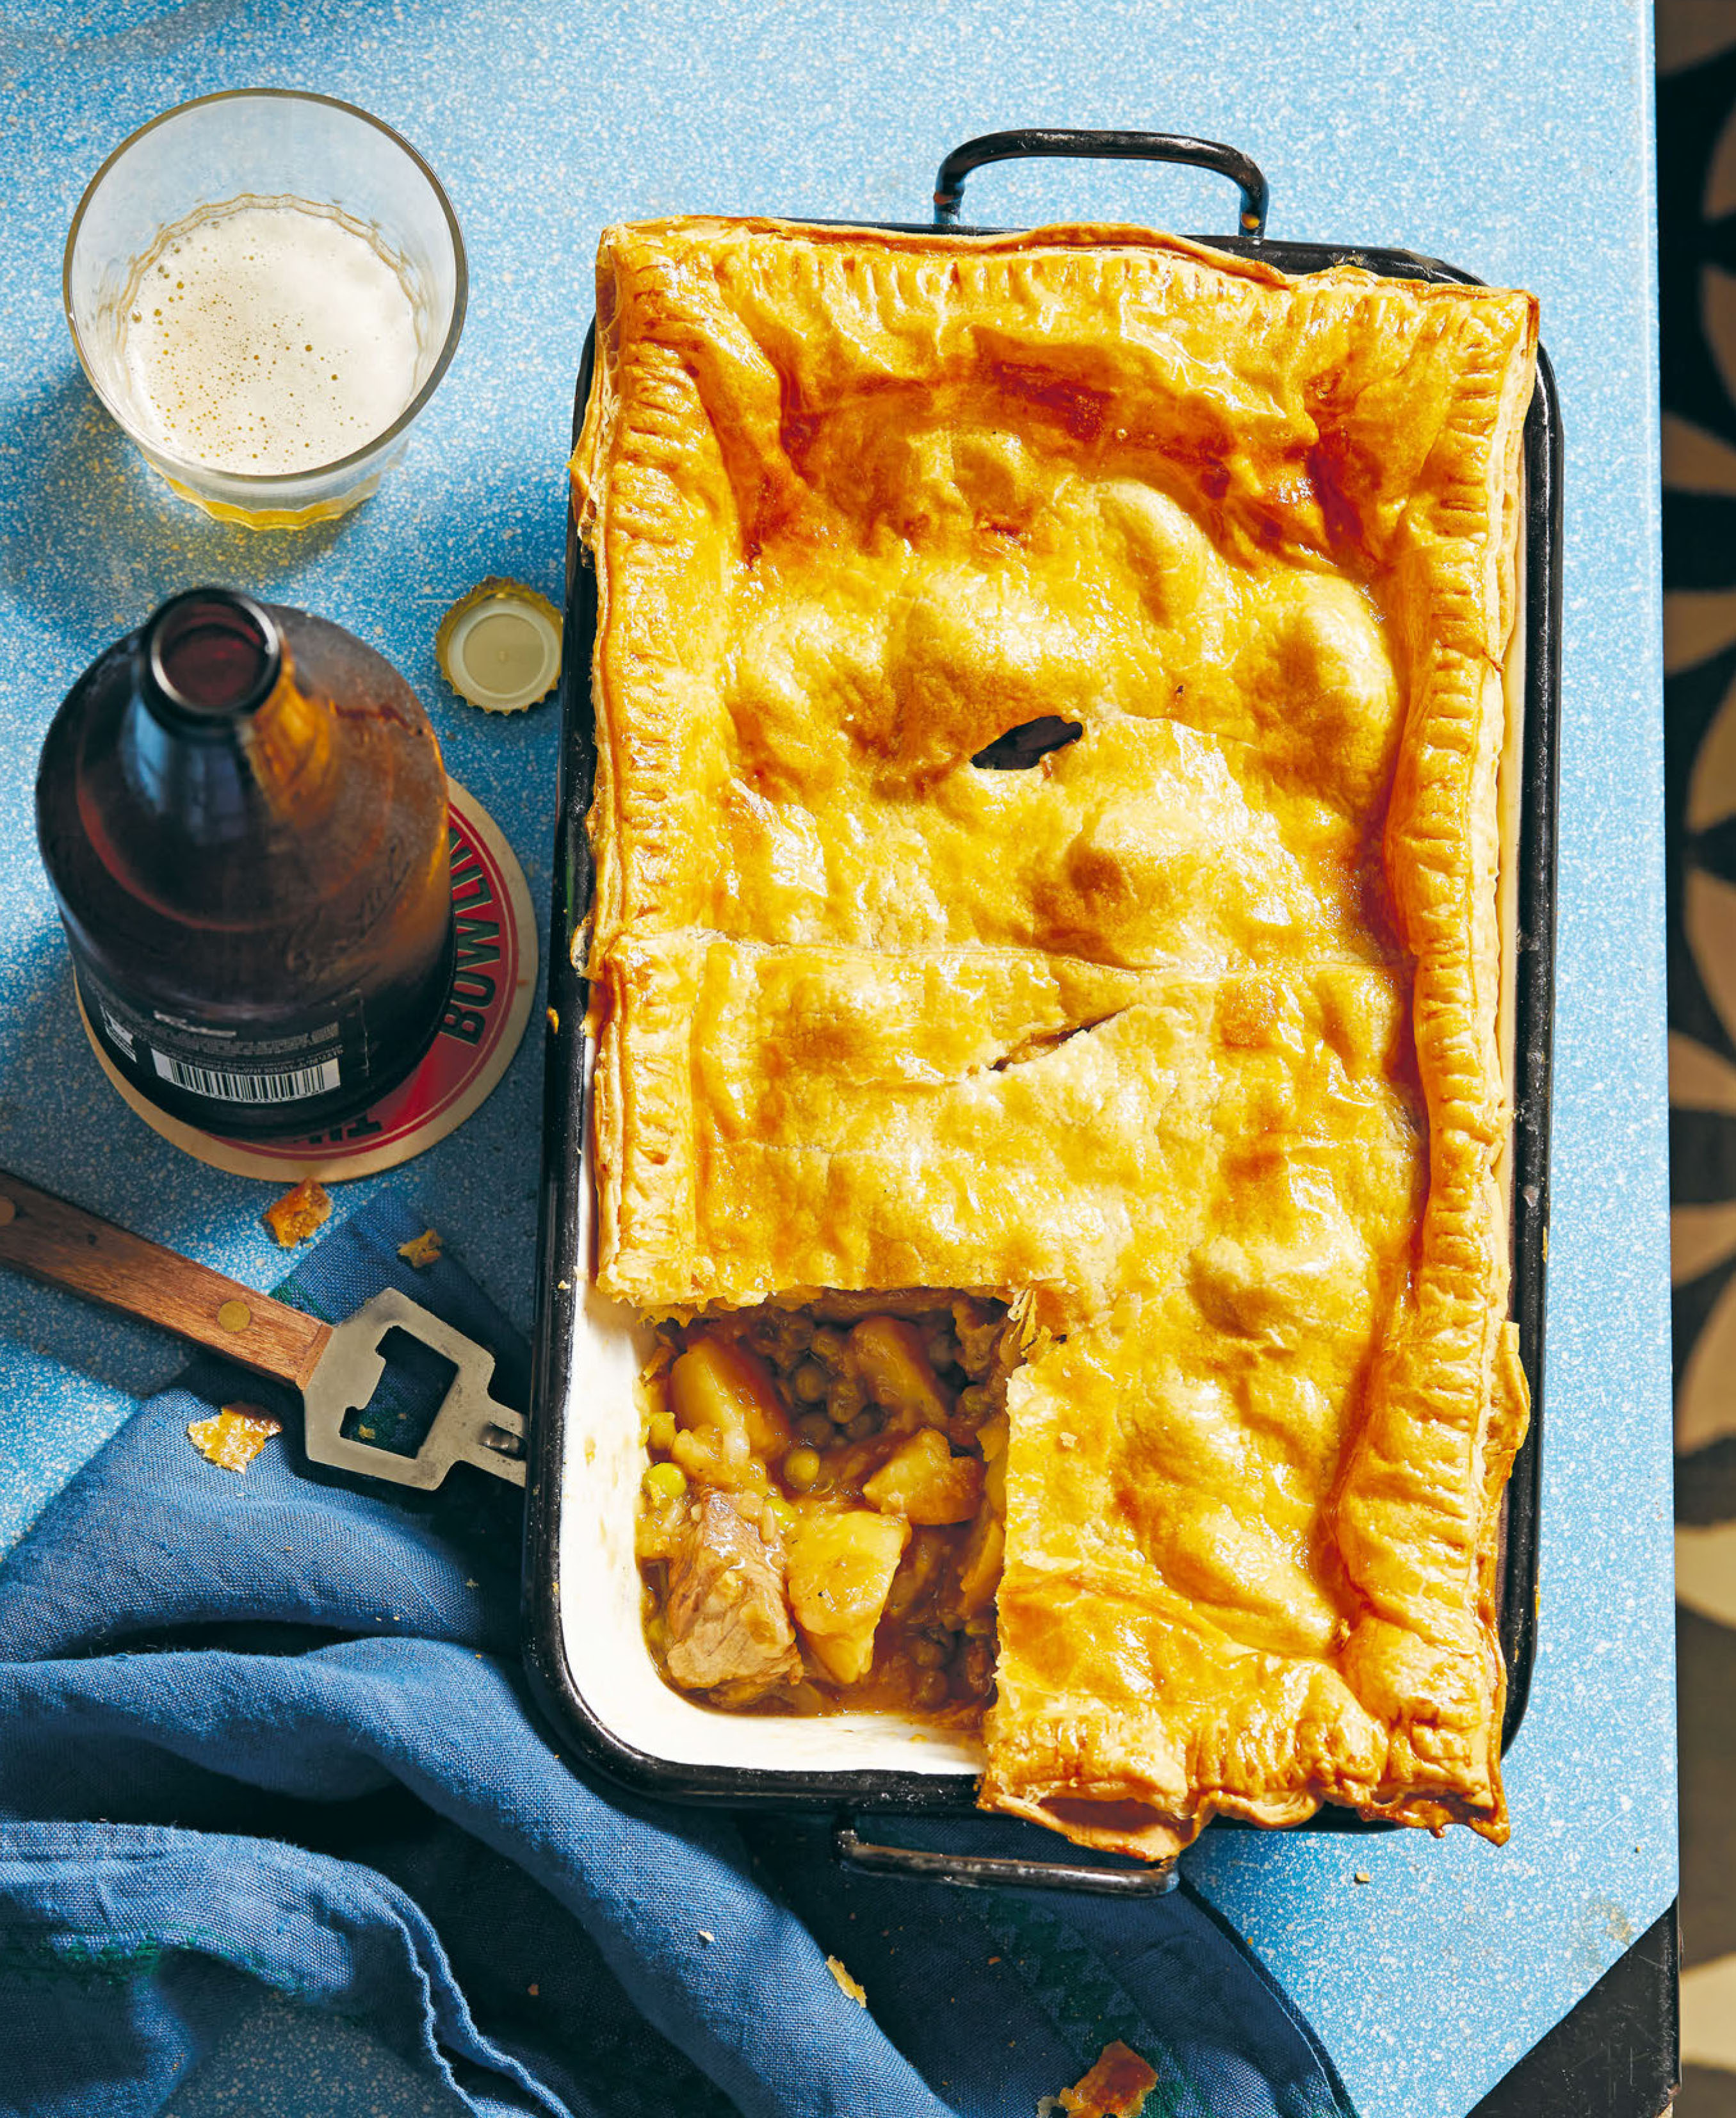 Shearer pie